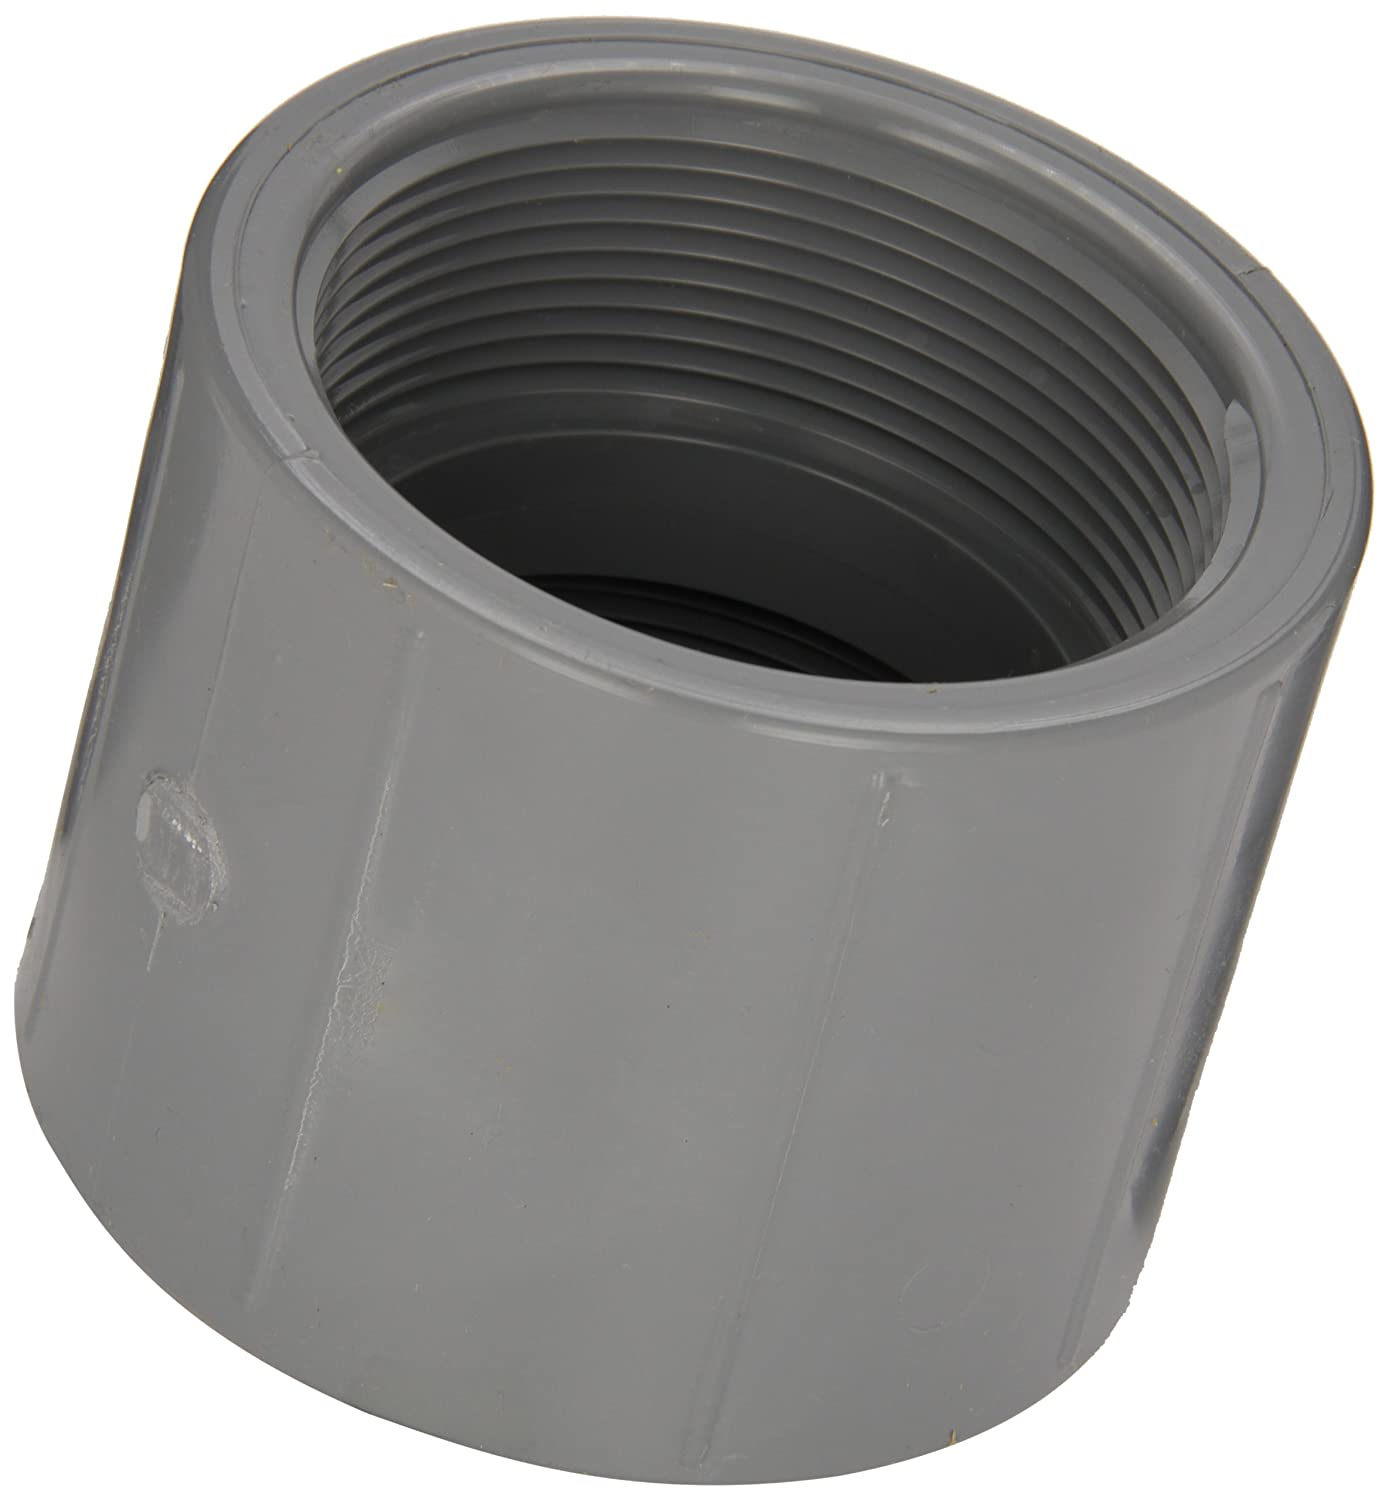 1-1//2 NPT Female Spears 830-C Series CPVC Pipe Fitting Schedule 80 Coupling